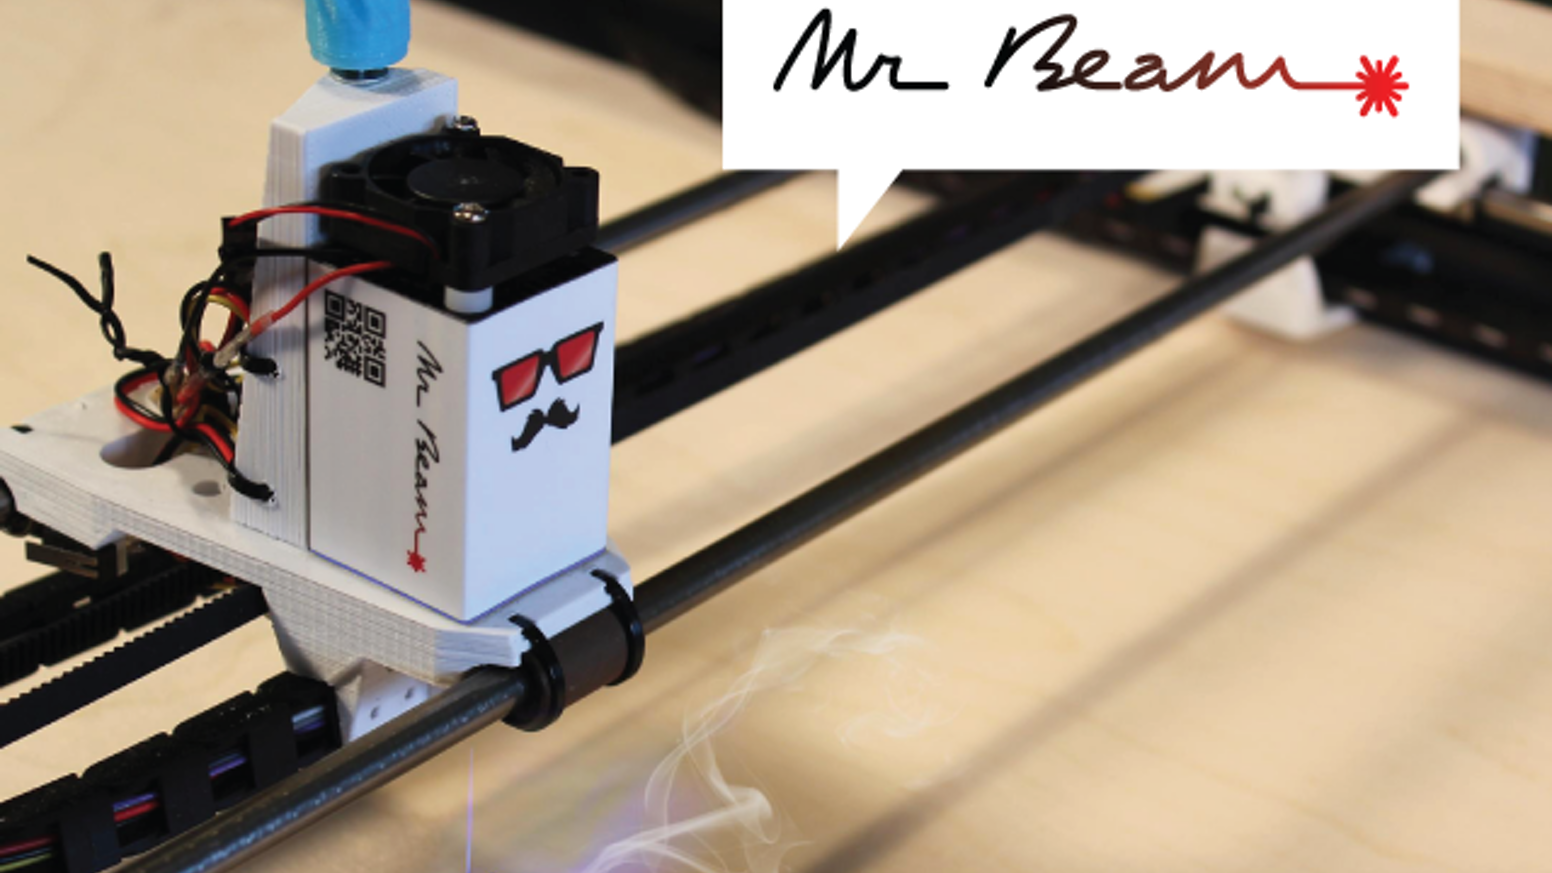 Portable Laser Engraver >> Mr Beam A Portable Laser Cutter And Engraver Kit By Mr Beam Lasers